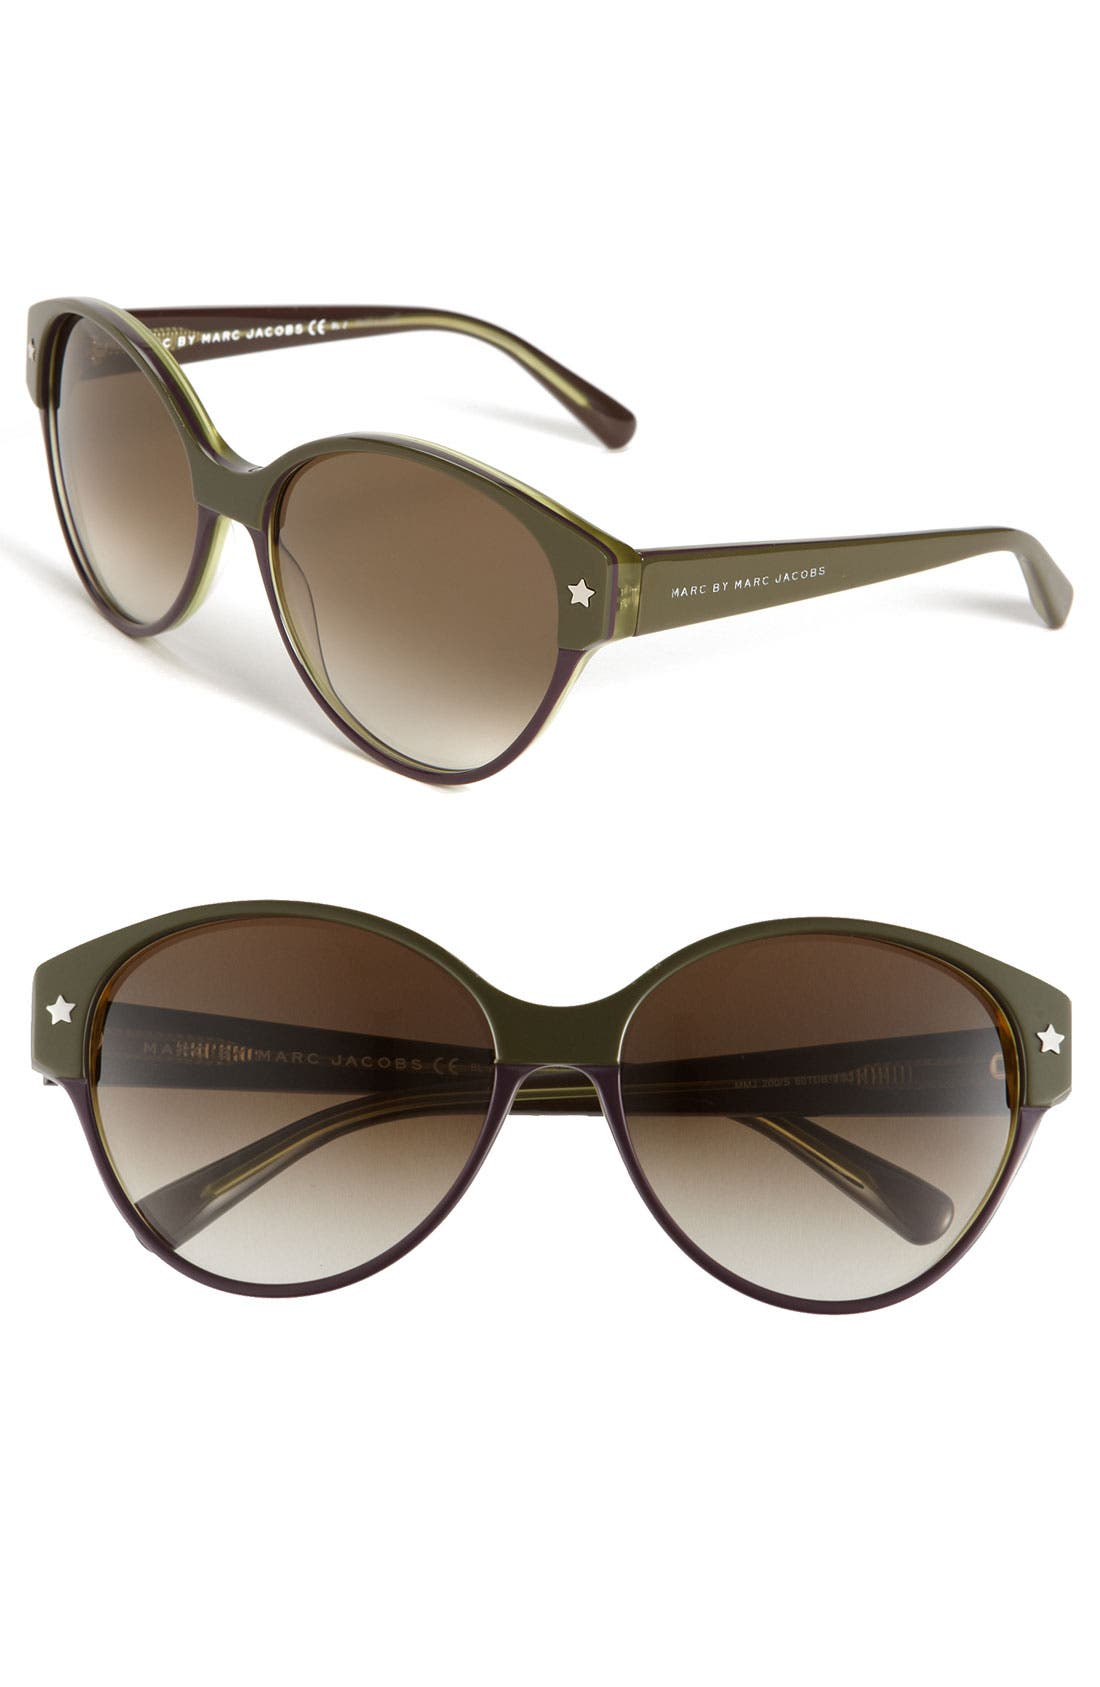 Main Image - MARC BY MARC JACOBS 'International Collection' 57mm Sunglasses